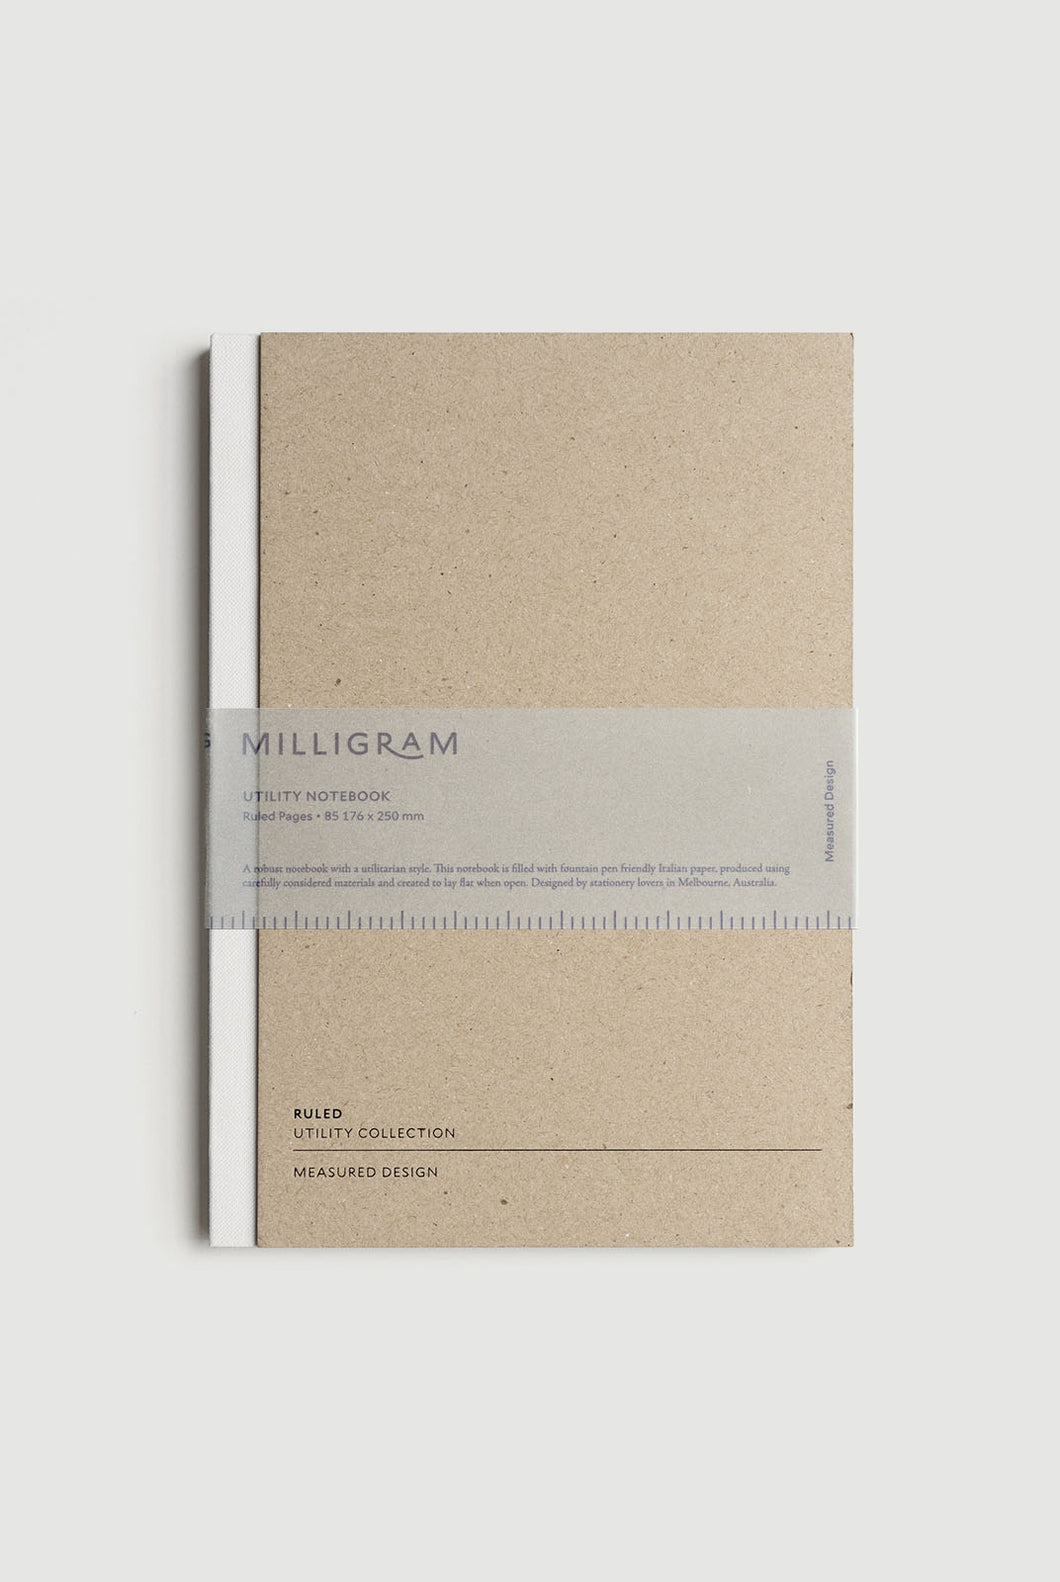 Milligram - Utility Notebook - Ruled - B5 (25 x 19cm) - White